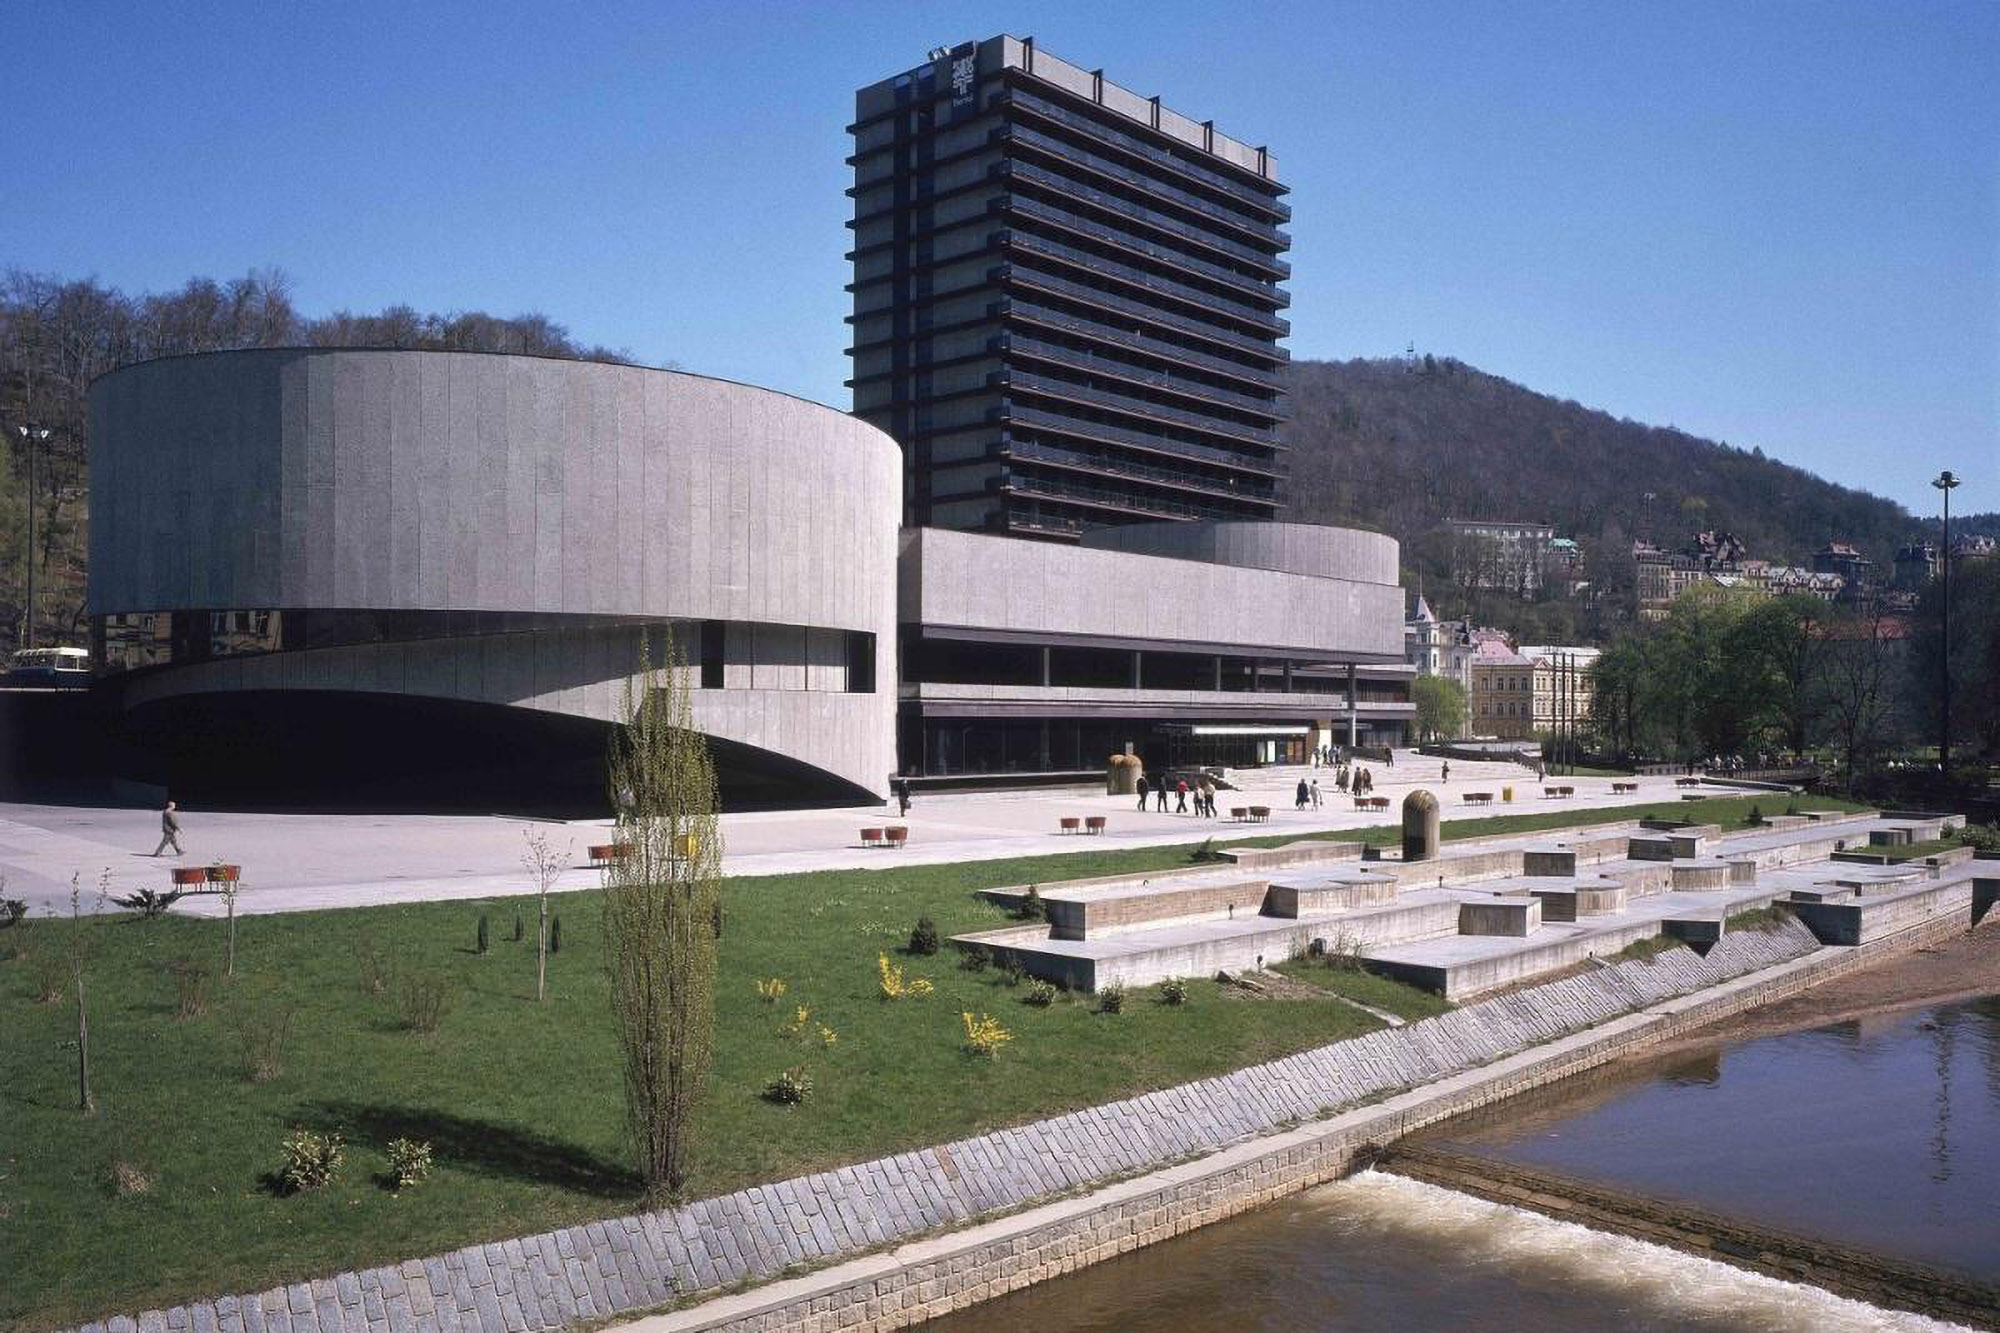 Věra Machoninová / Vladimir Machonin: Hotel Thermal, Karlovy Vary, Czech Republic, 1964–1976. Photo: from the Archive of Věra Machoninová, courtesy of Marie Kordovská